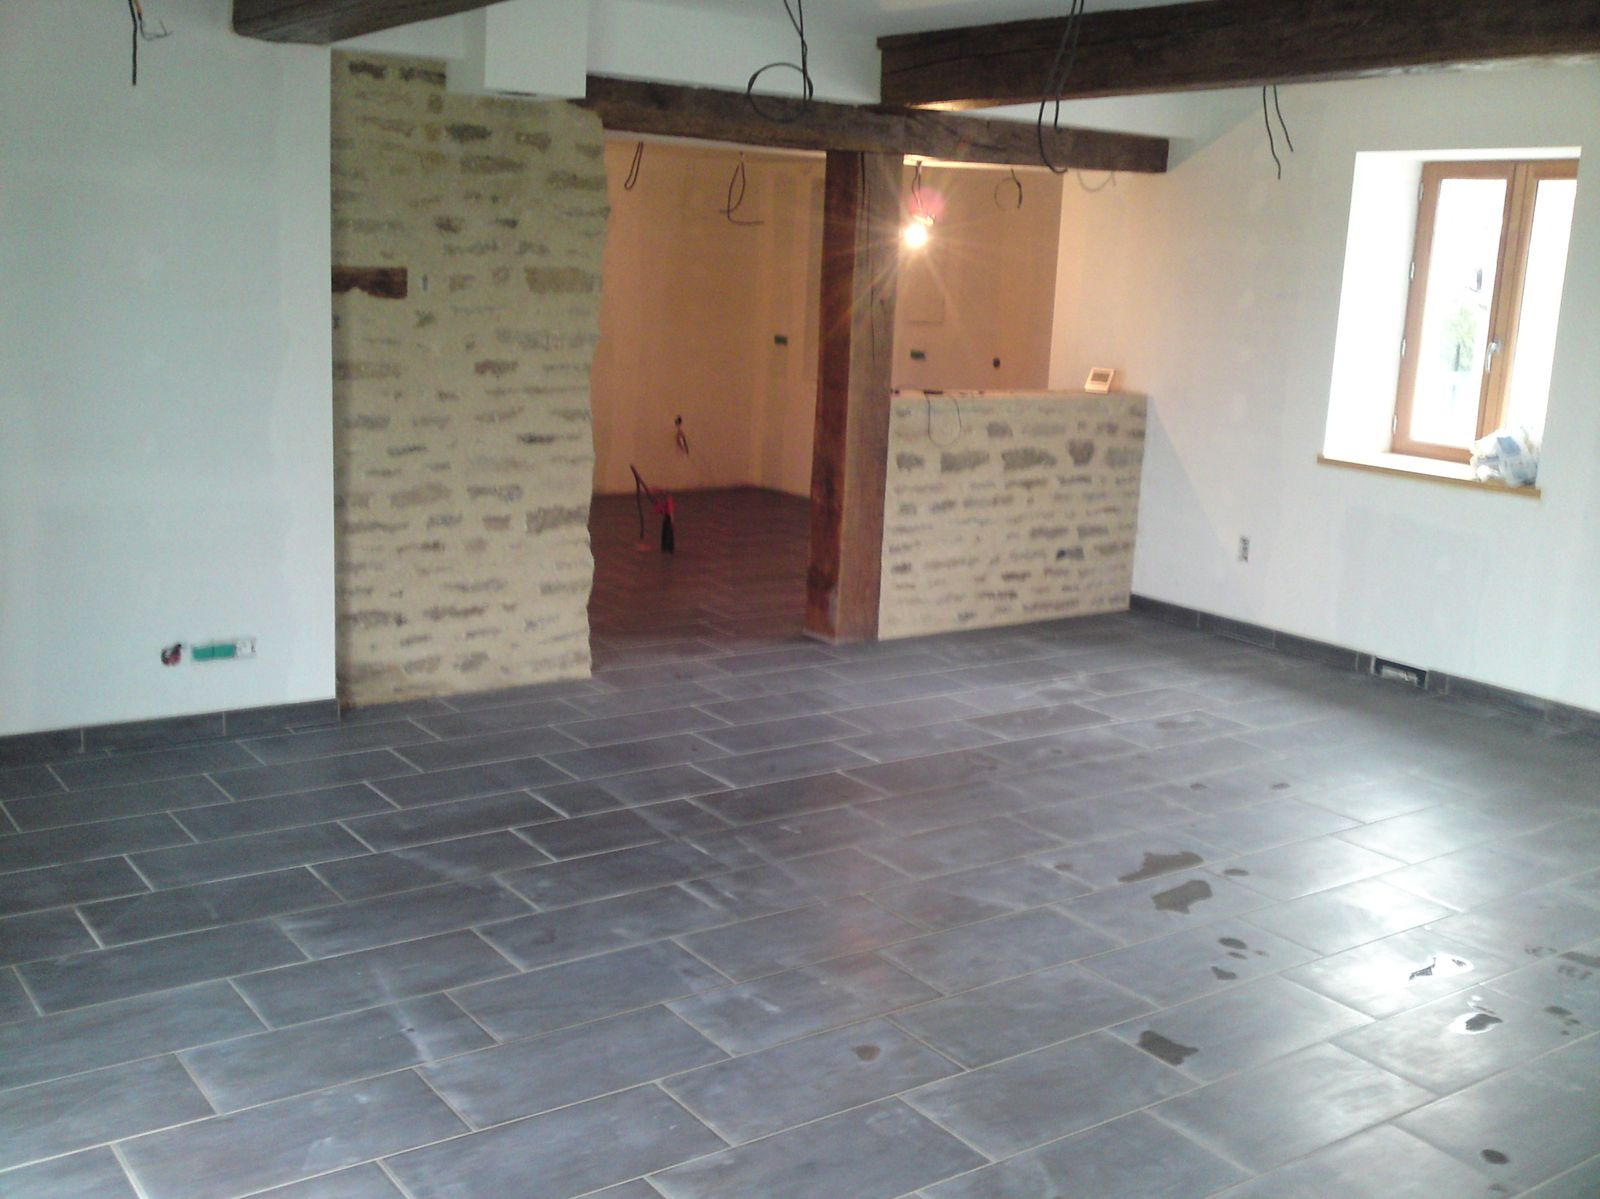 Joints de carrelage renovation d 39 une fermette en bourgogne for Carrelage salon salle a manger